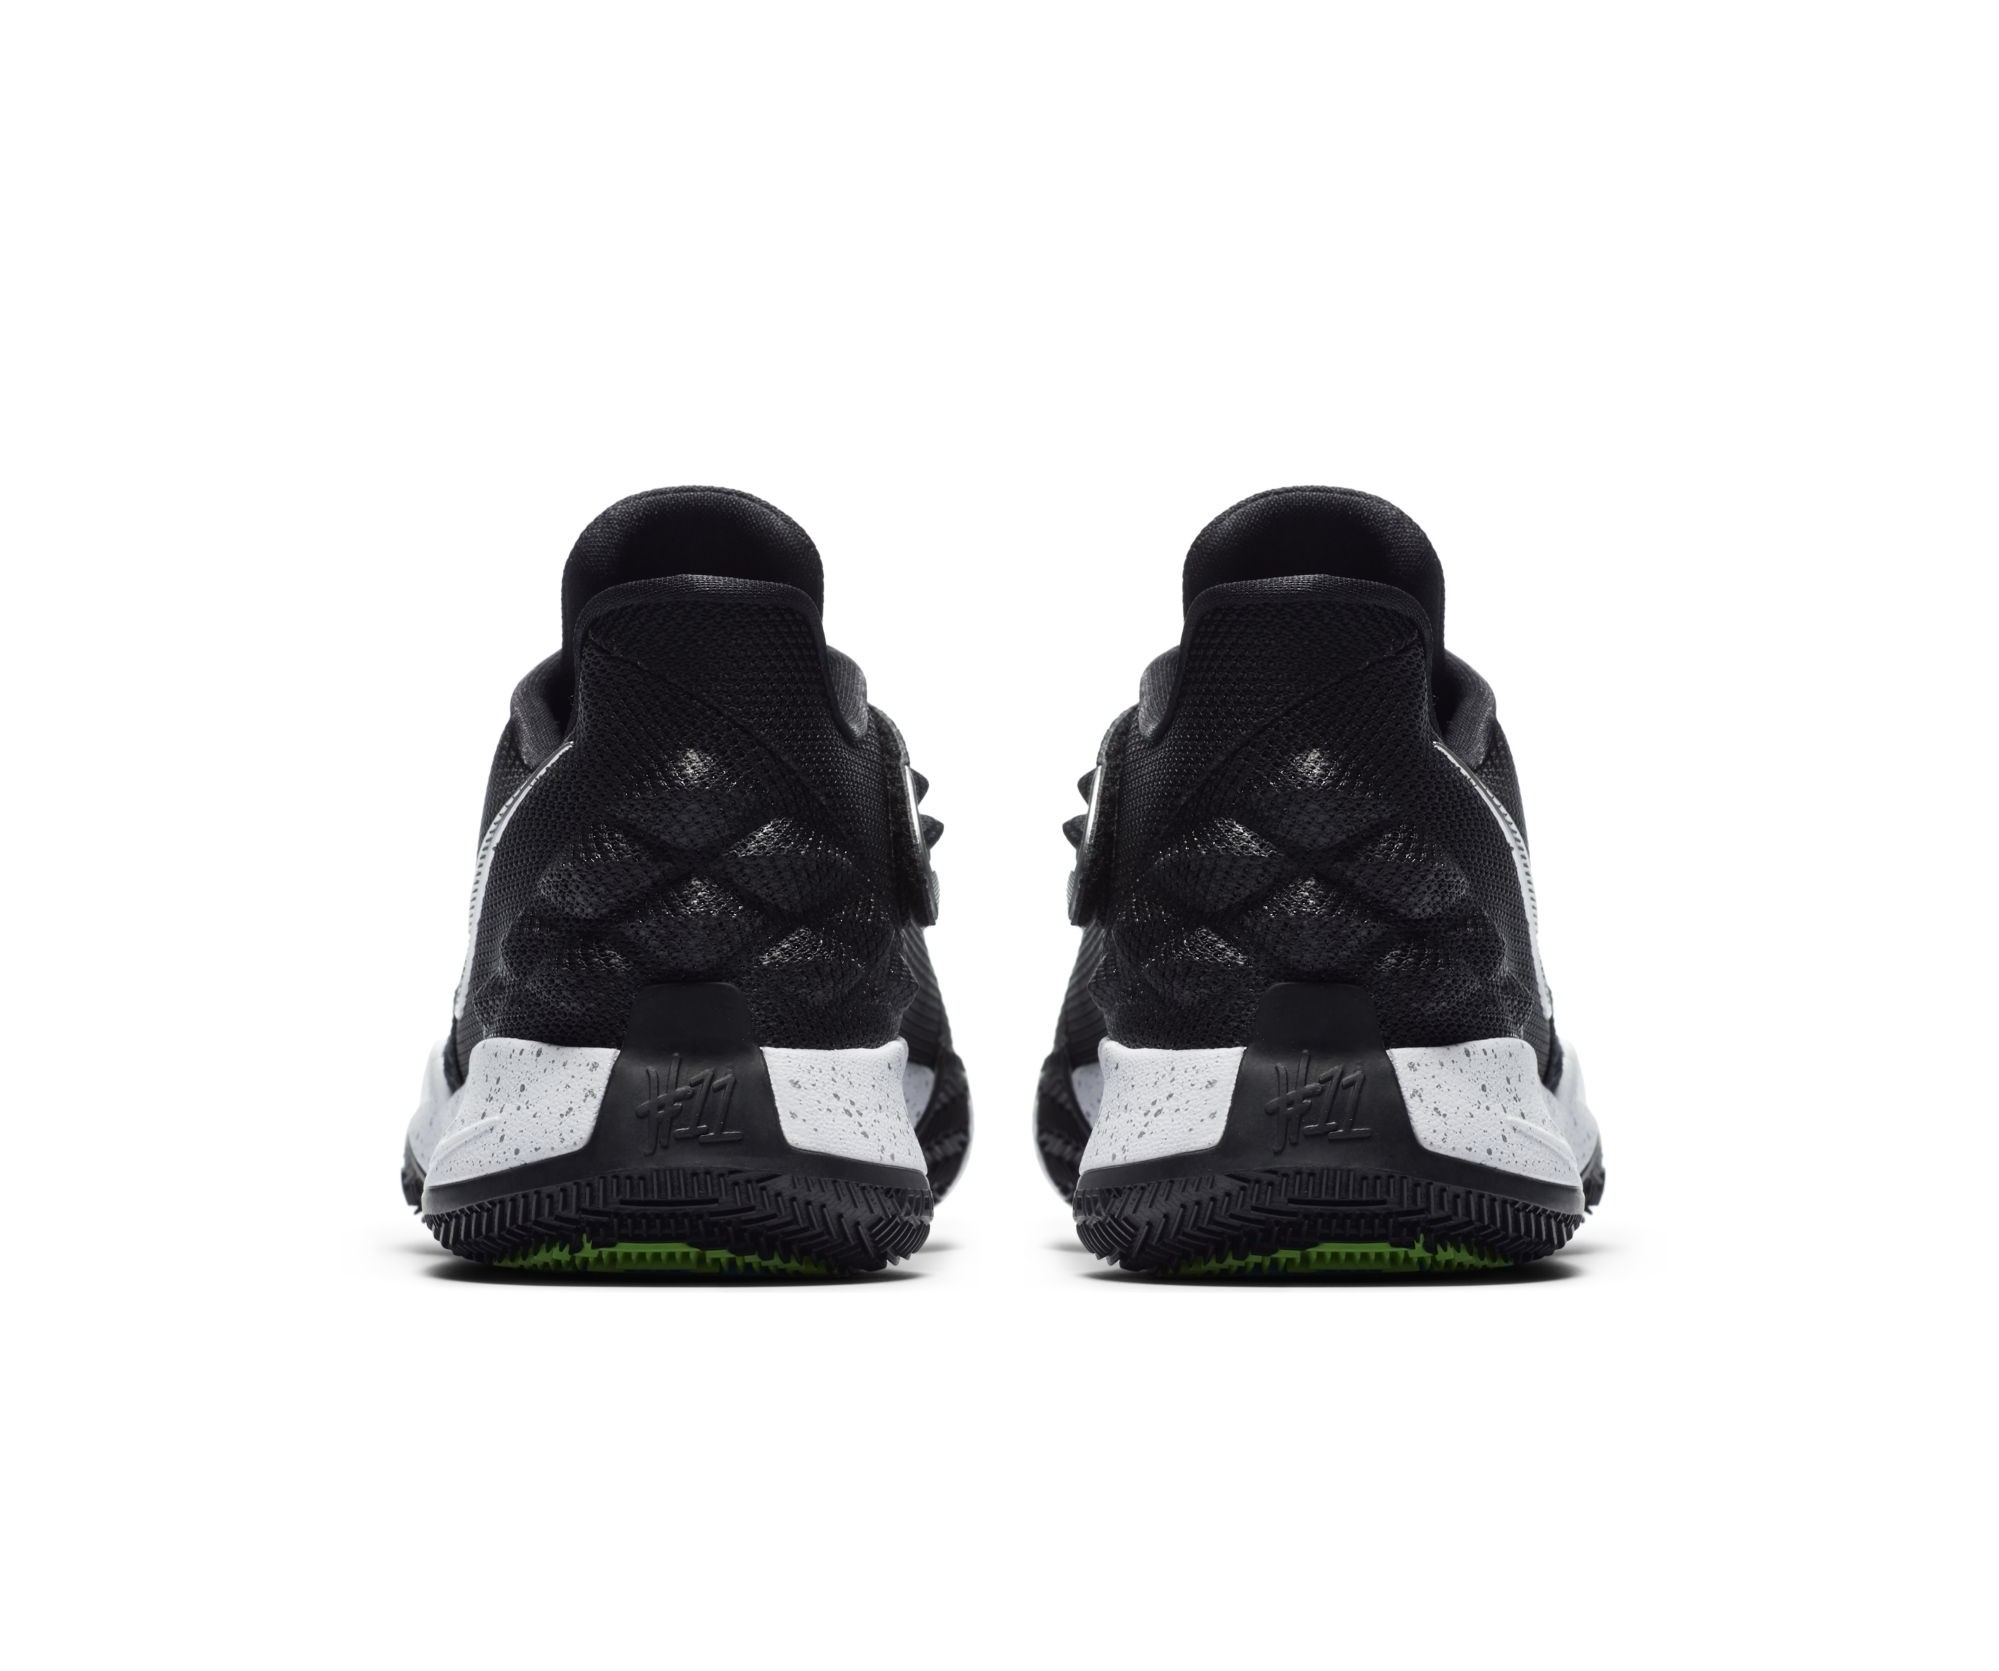 wholesale dealer f0b4d 79eec The Nike Kyrie 4 Low is Clean in Black and White - WearTesters